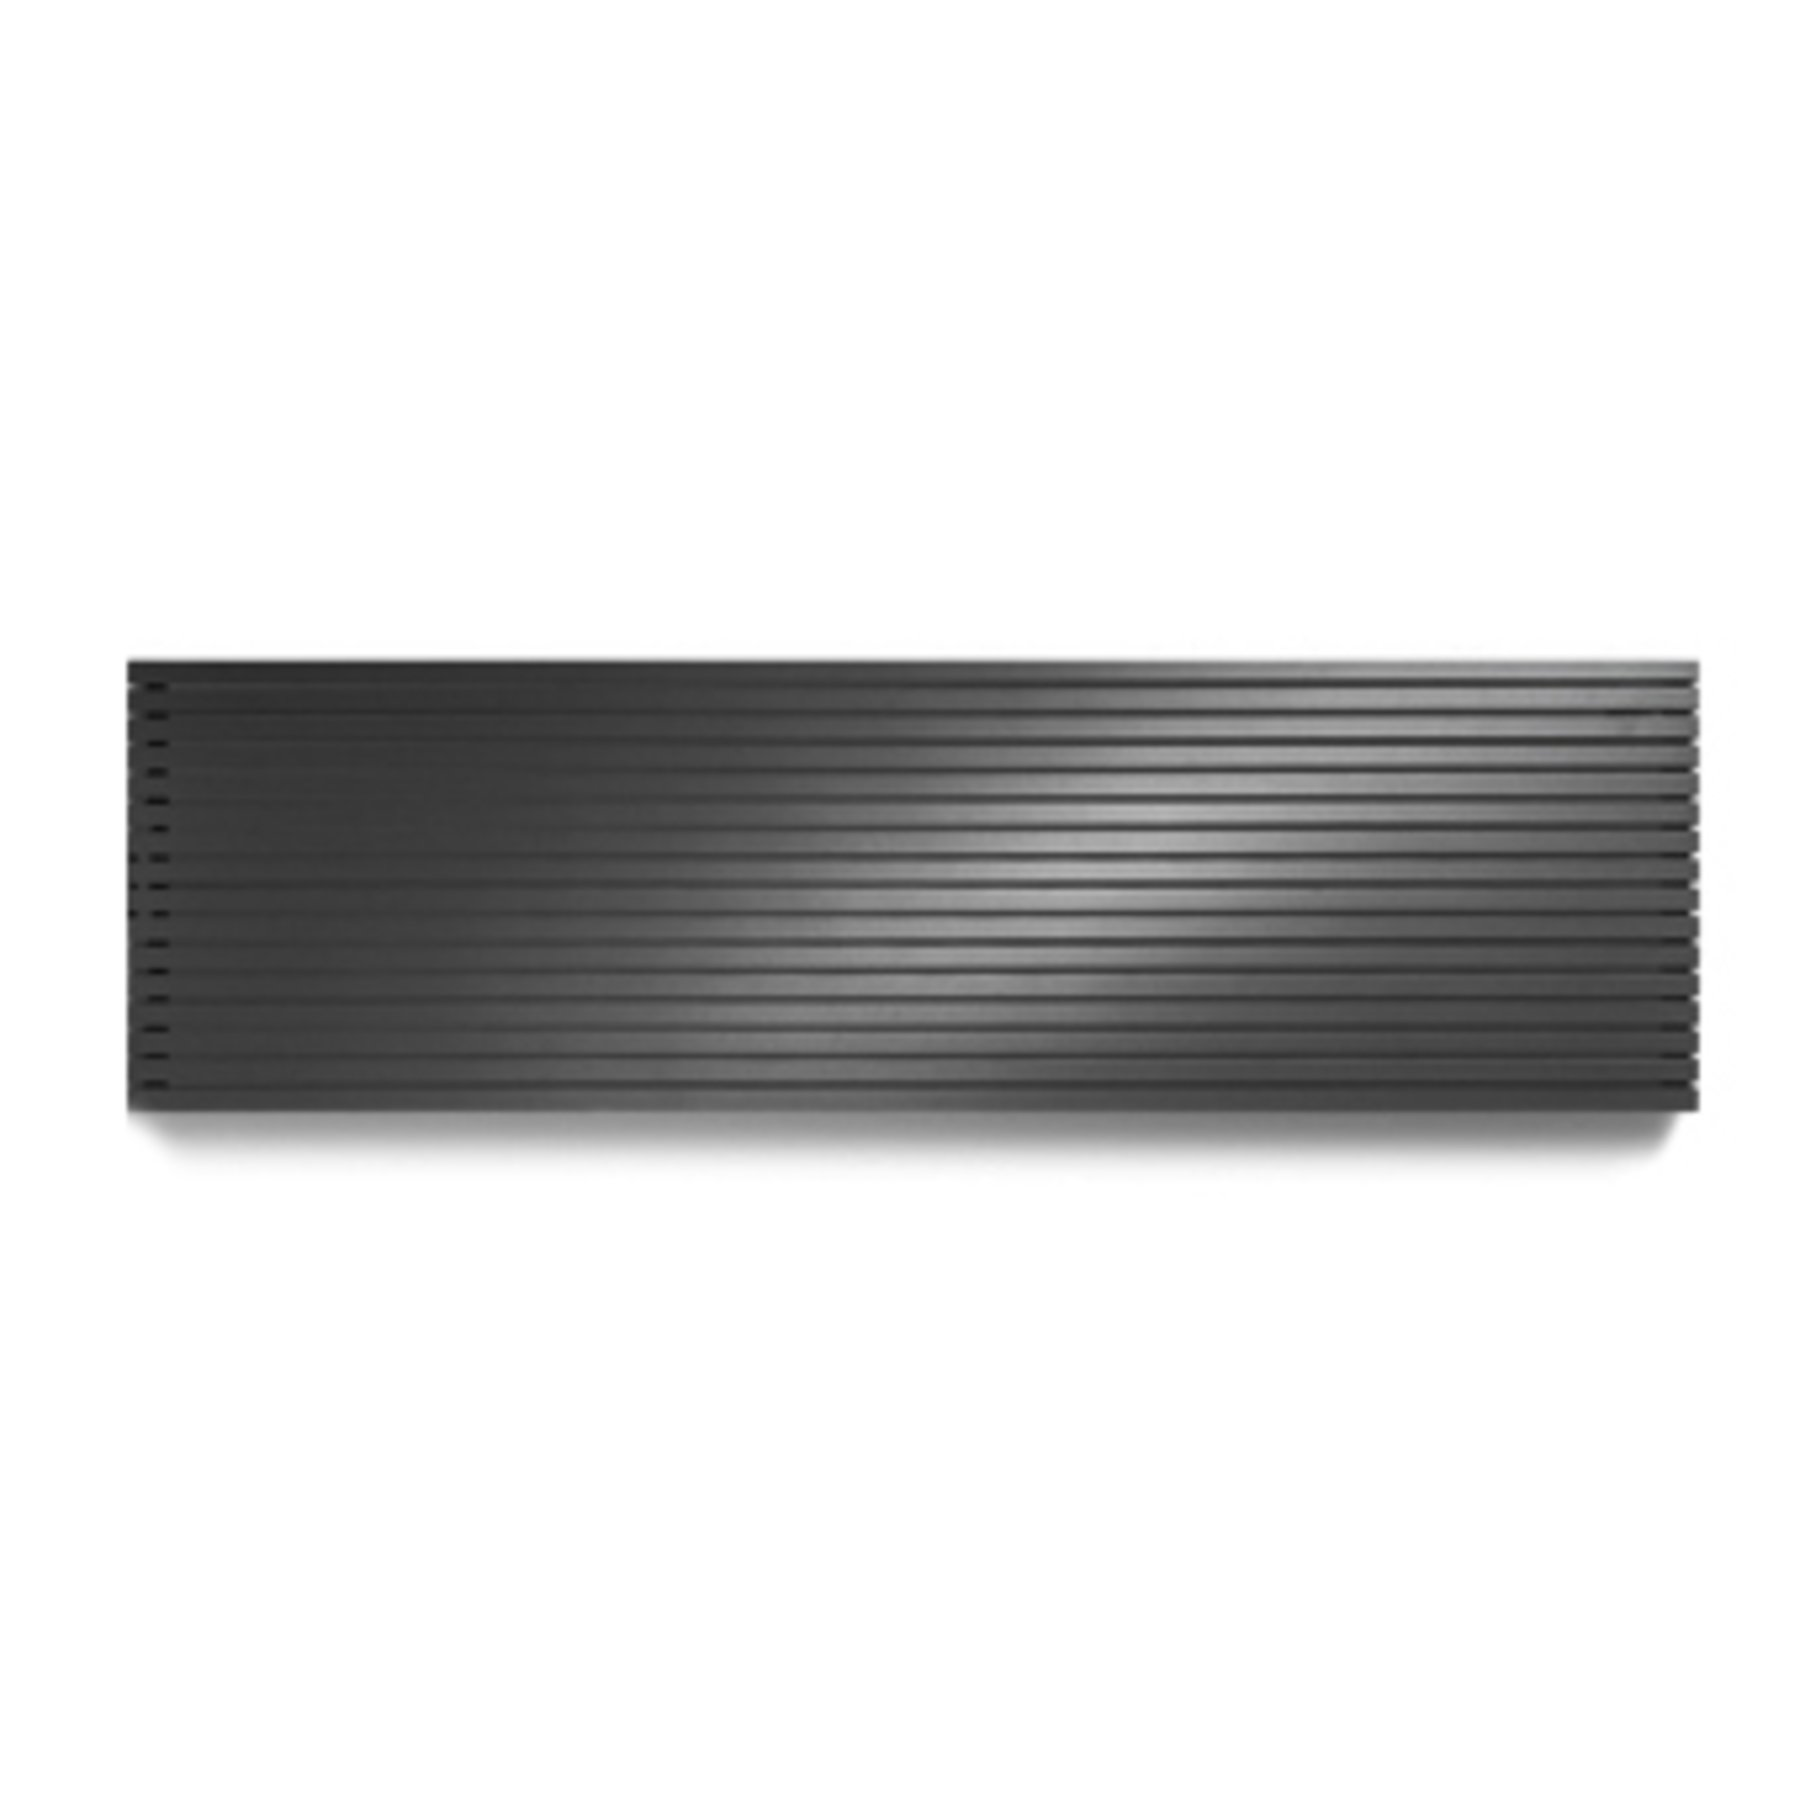 Vasco Carre CPHN1 designradiator horizontaal enkel 2800x535mm 1722 watt antraciet